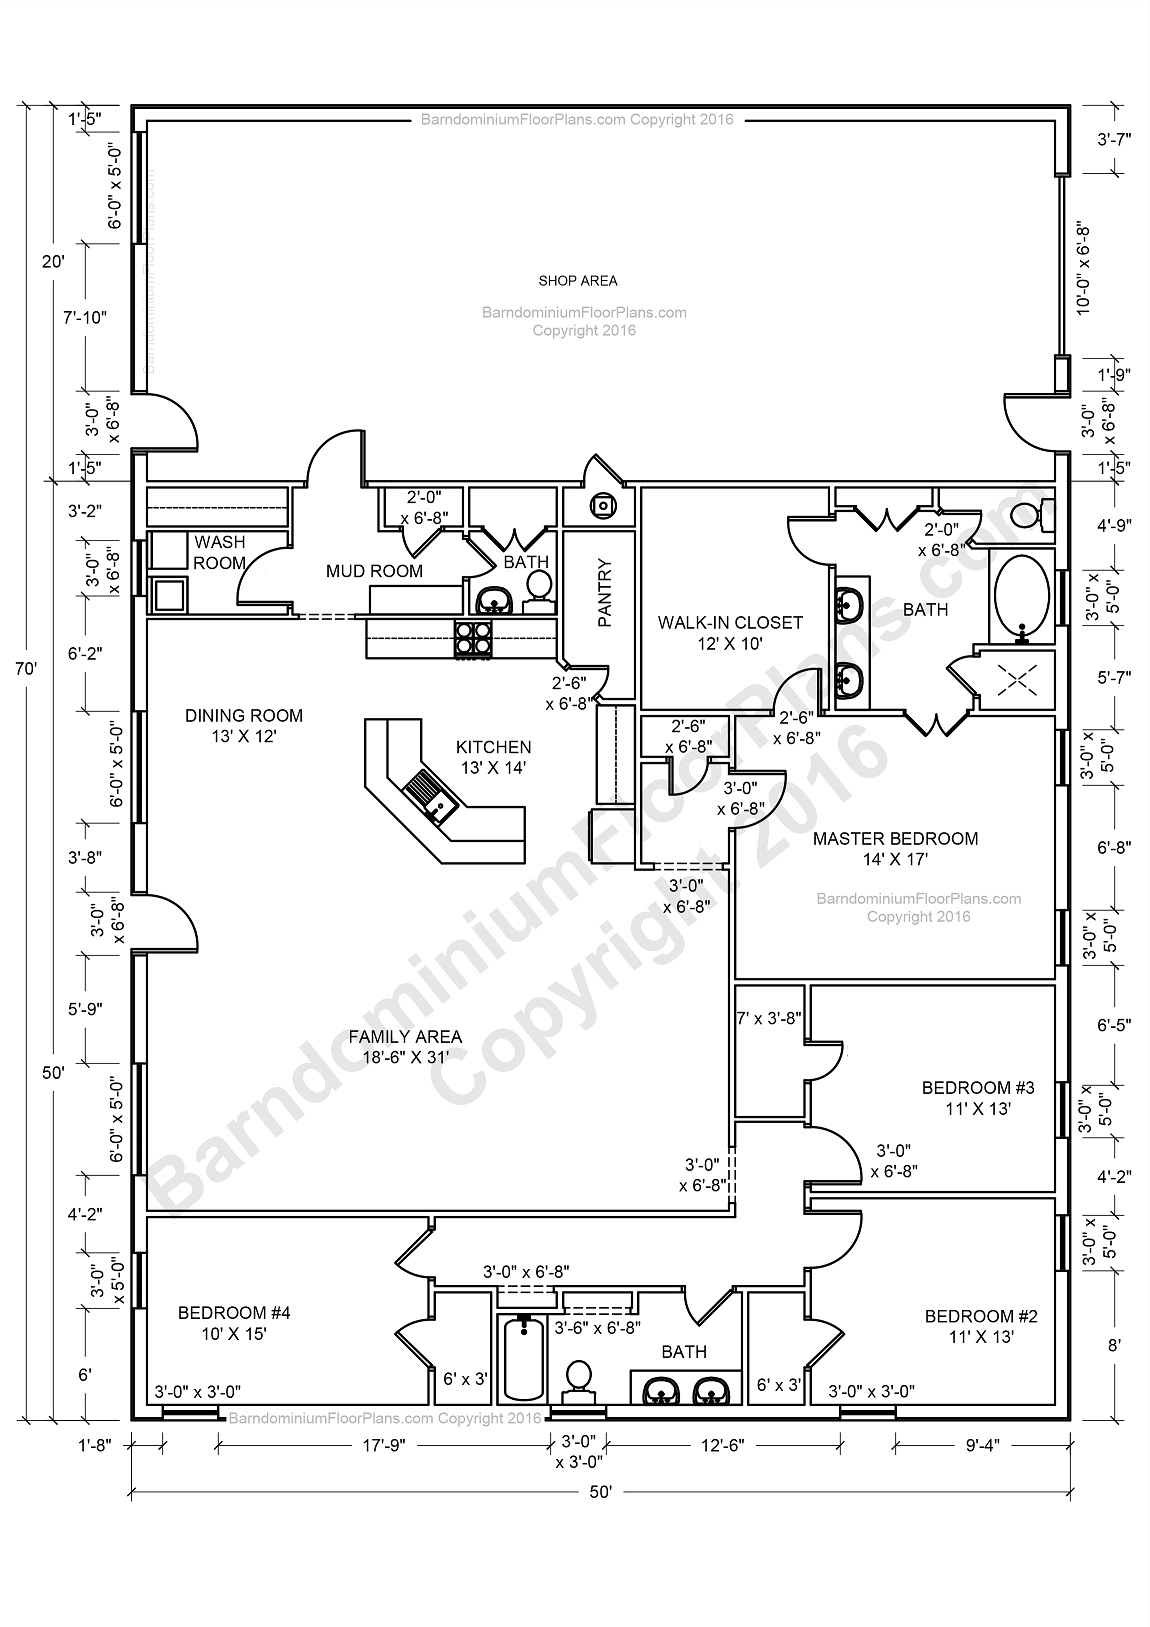 Barndominium floor plans barndominium floor plans 1 800 for Metal shop home plans